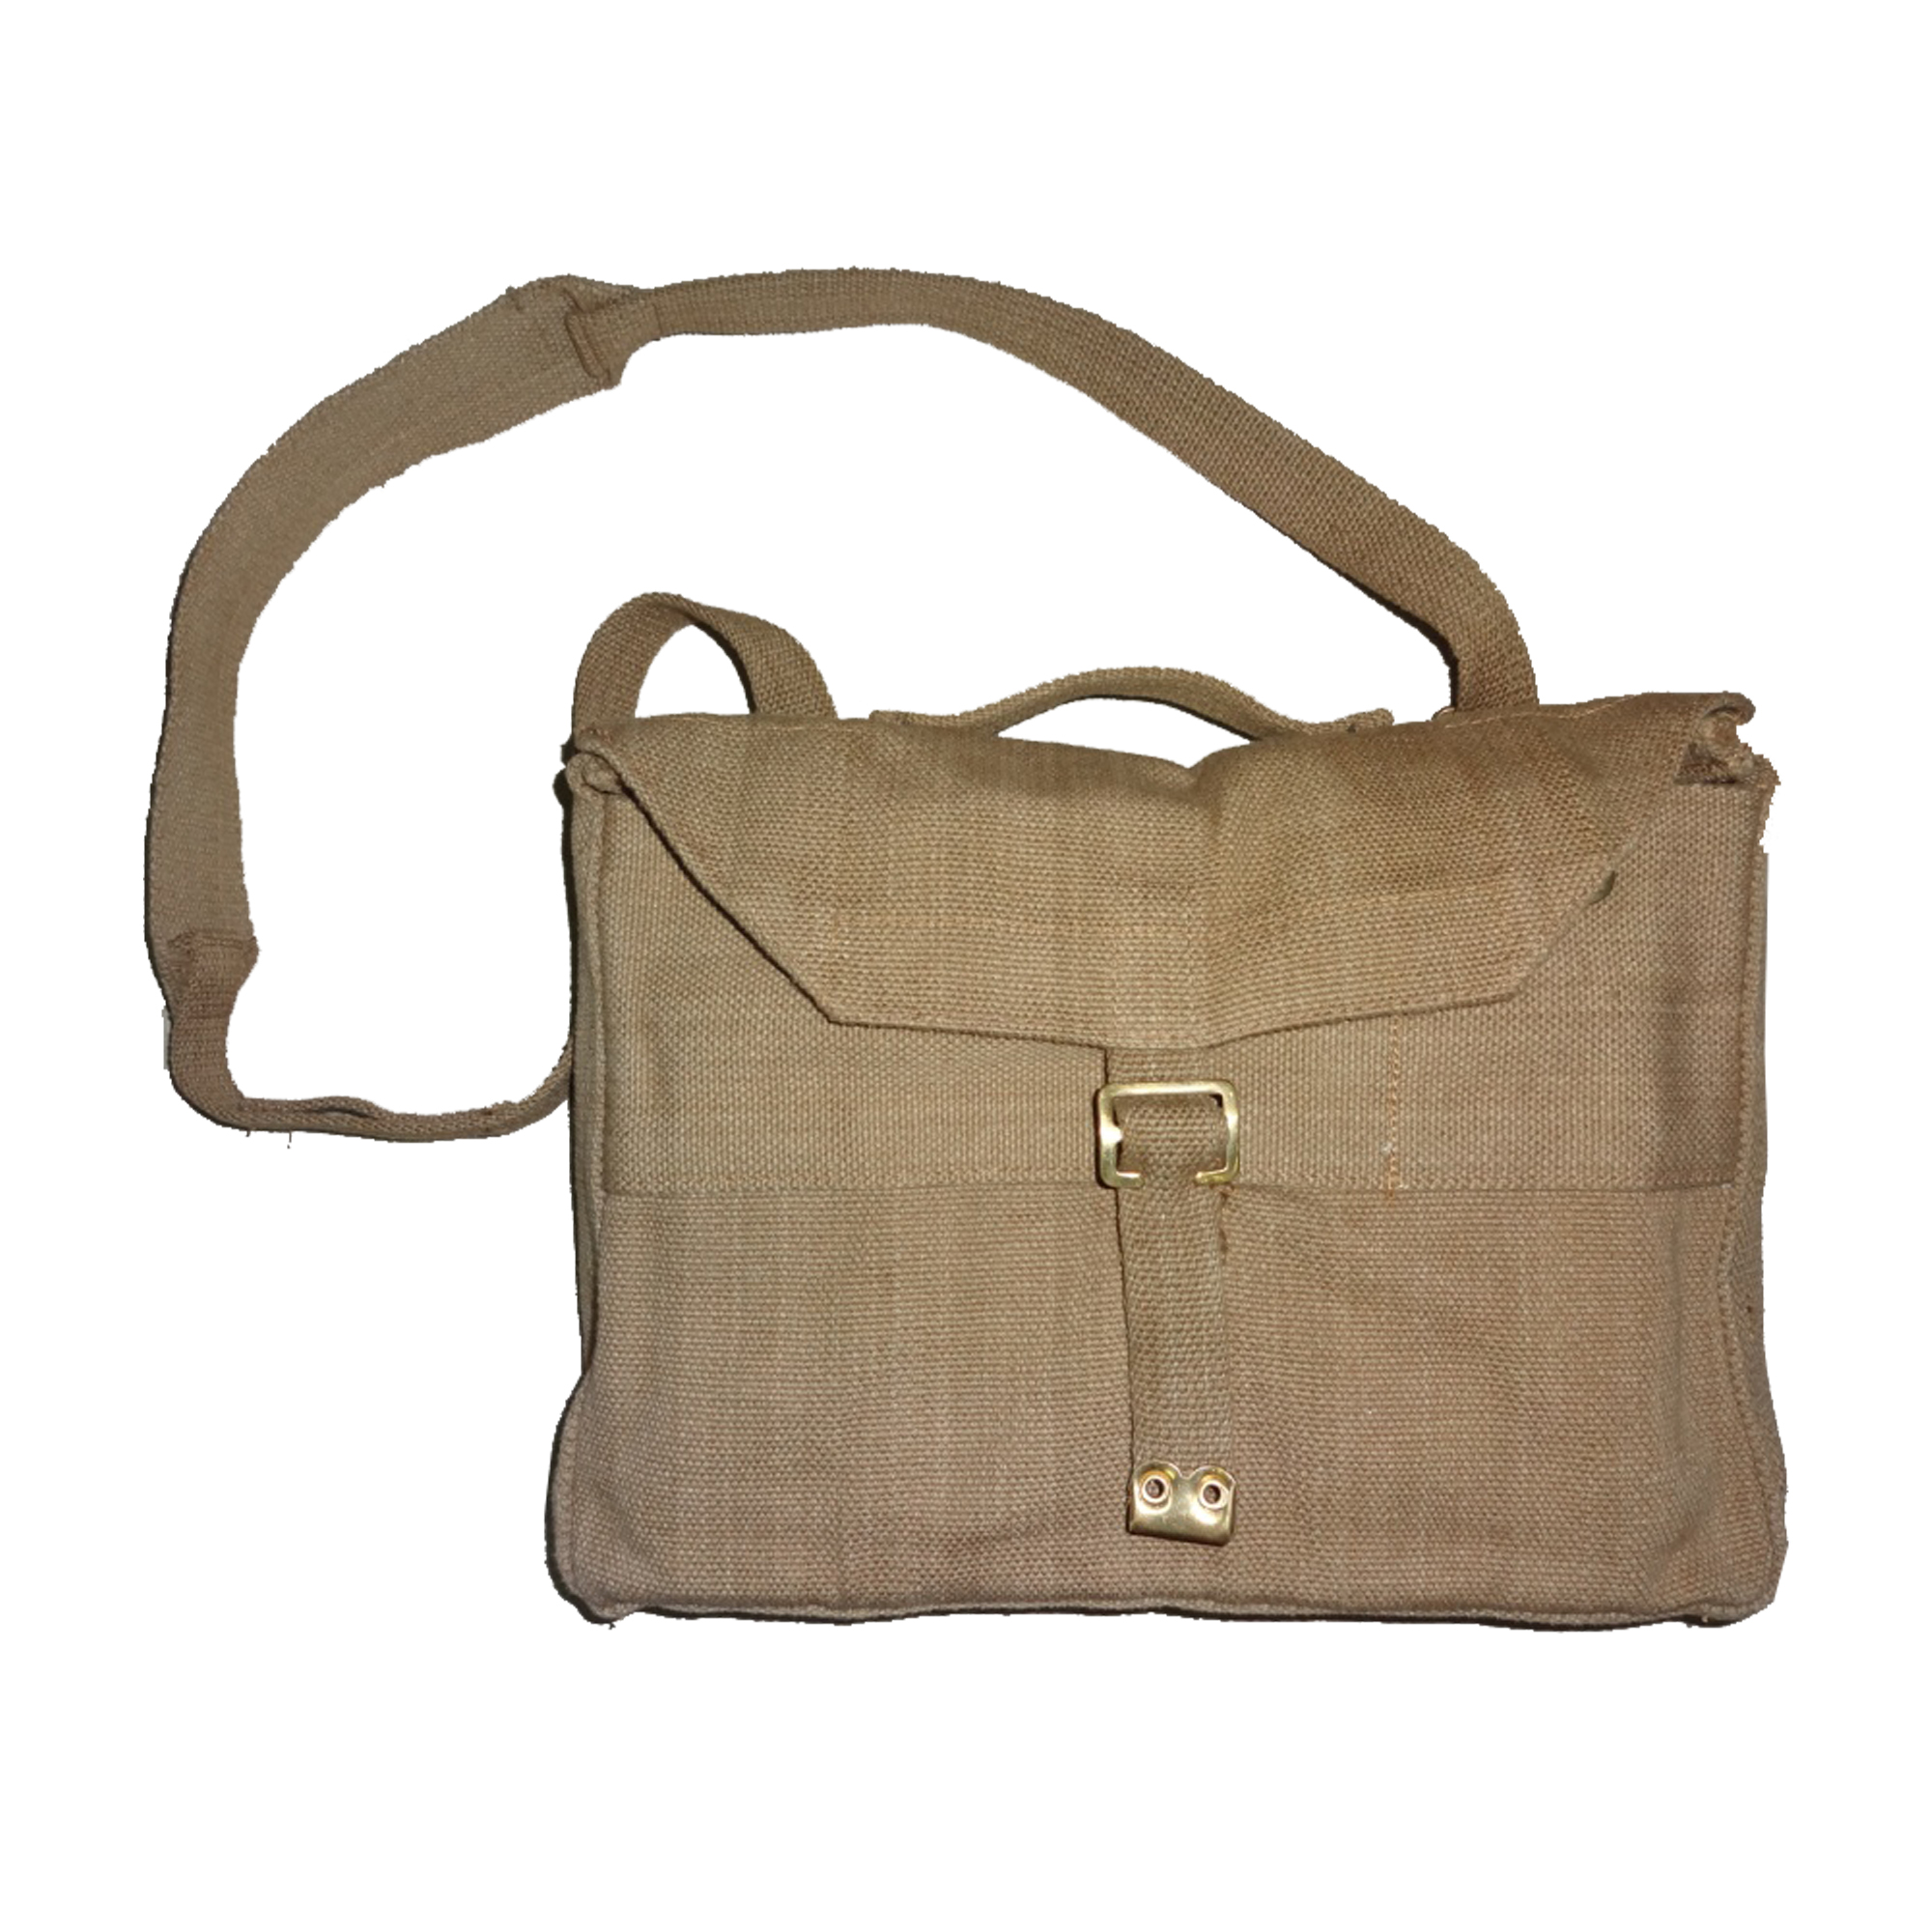 Wwii British P 37 Valise Bag For